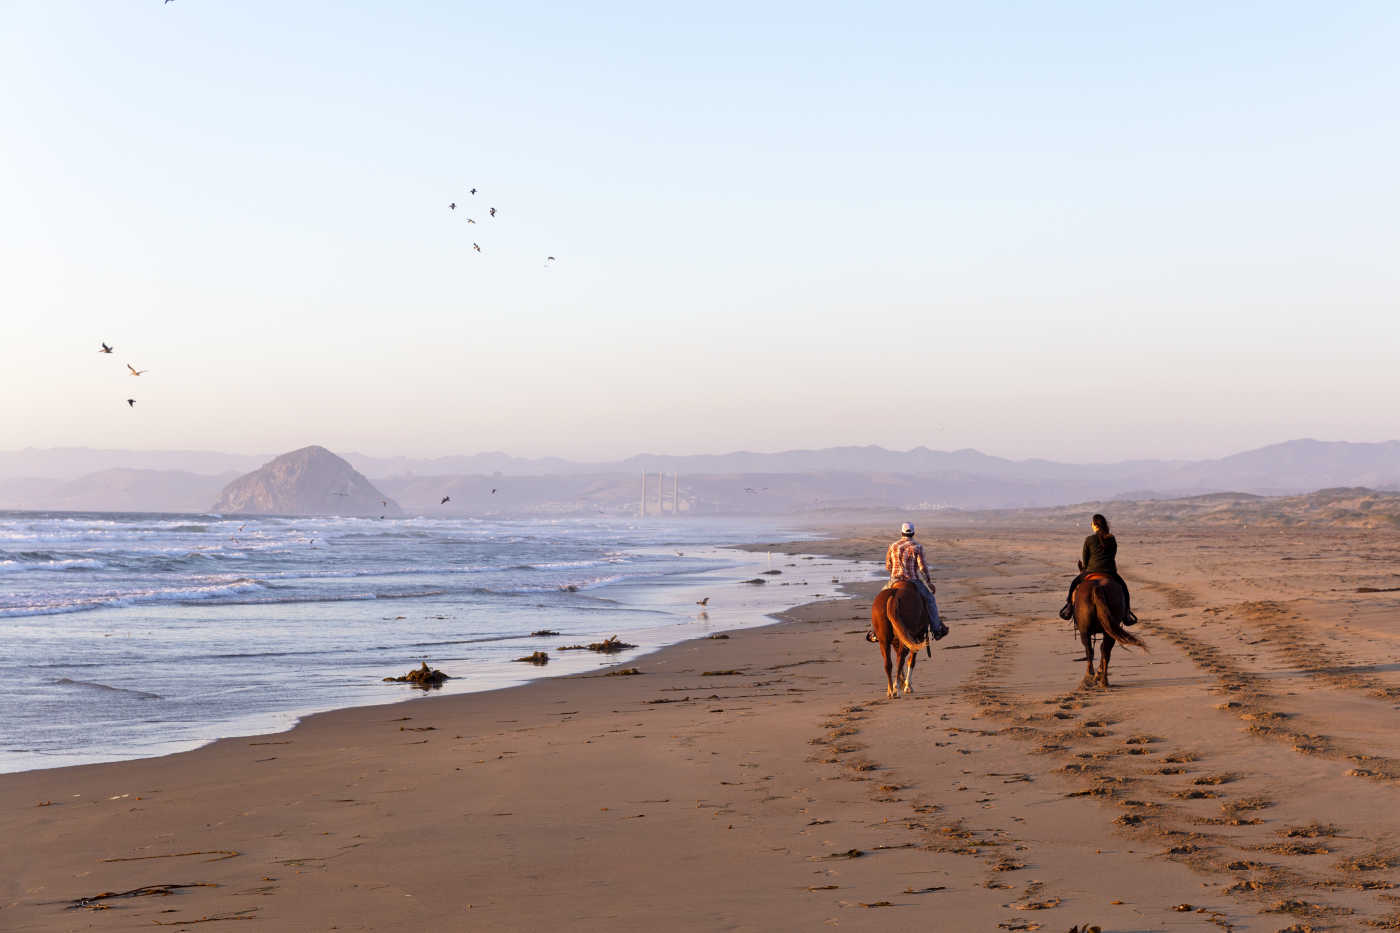 A pair of horse riders trot parallel to the show on a beach.